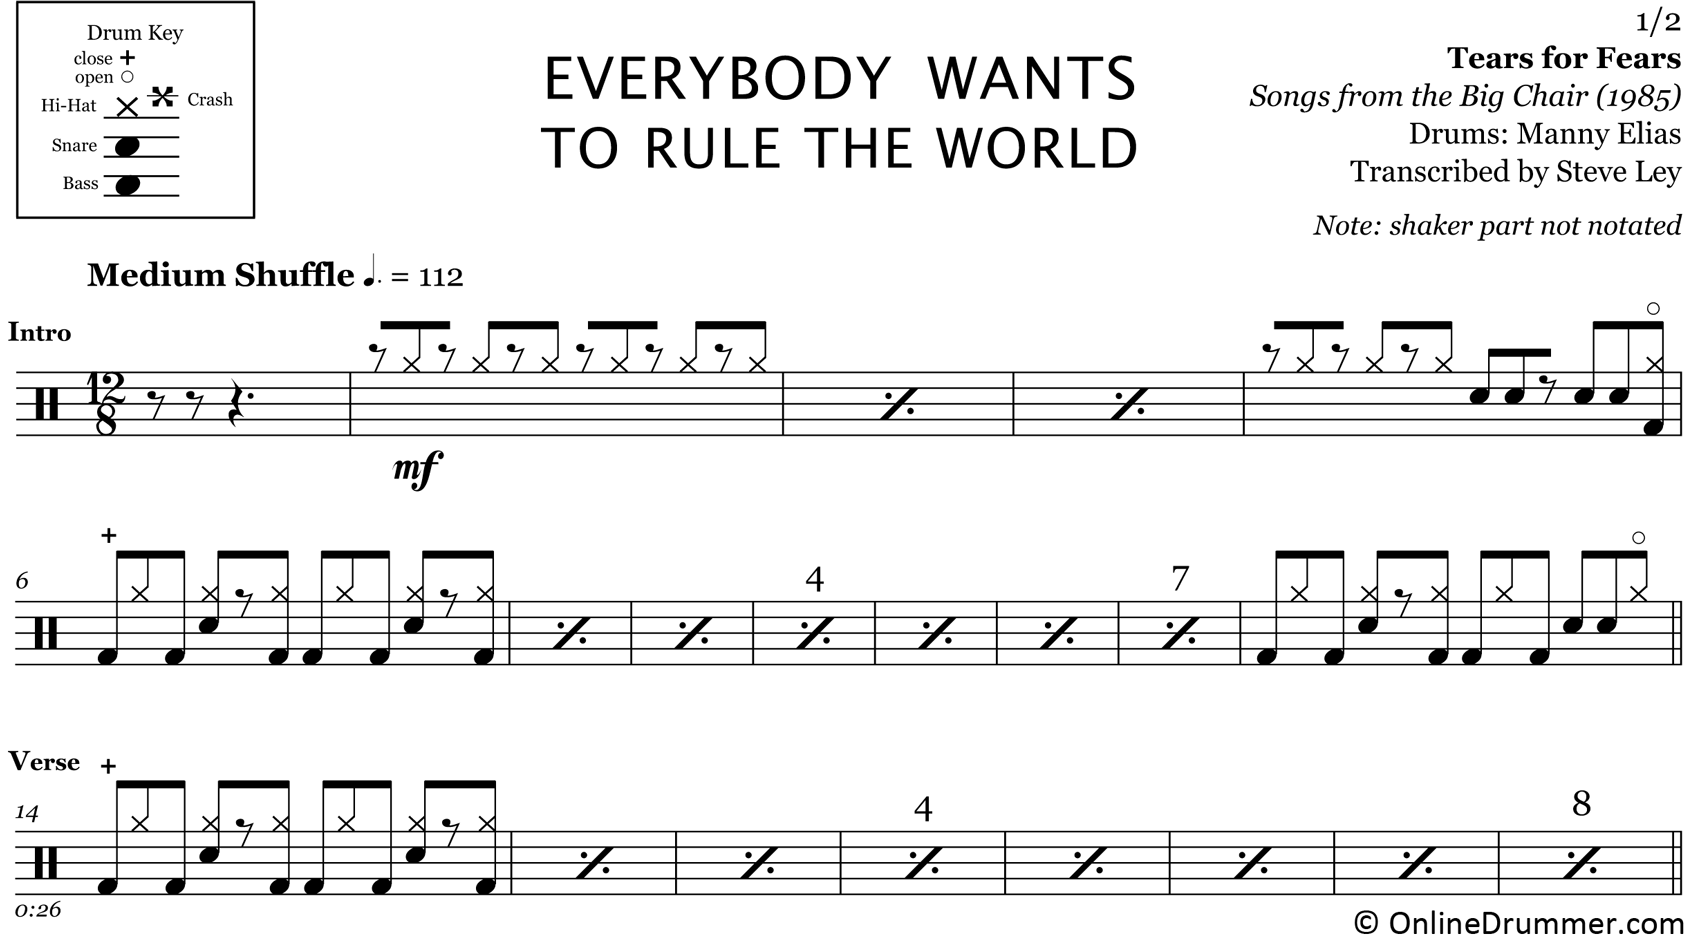 Everybody Wants To Rule The World - Tears For Fears - Drum Sheet Music